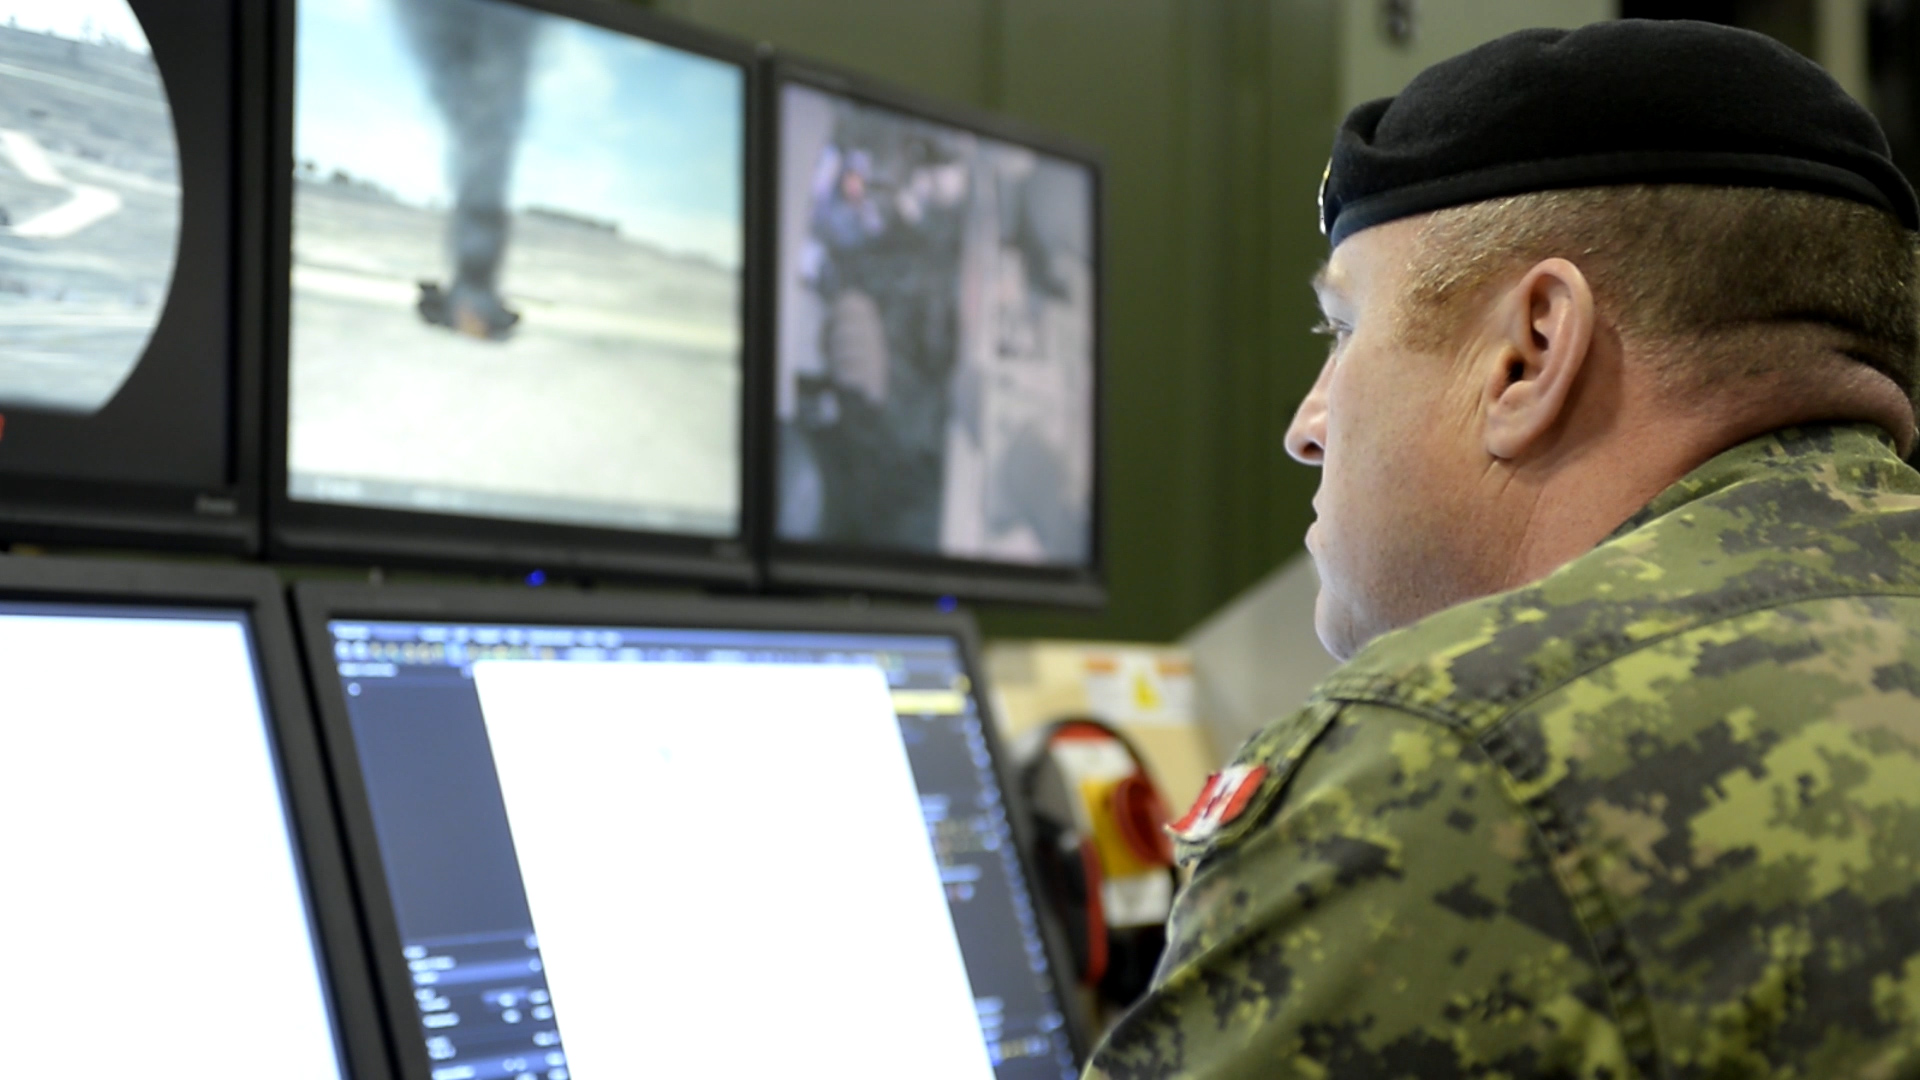 En mars 2015, un instructeur surveille les militaires qui participent à une séance sur le simulateur fixe de blindé Leopard-2 au Centre d'instruction au combat, qui fait partie du Centre de doctrine et d'instruction de l'Armée canadienne de Gagetown, au Nouveau-Brunswick. Photo par : Le Centre d'instruction au combat.